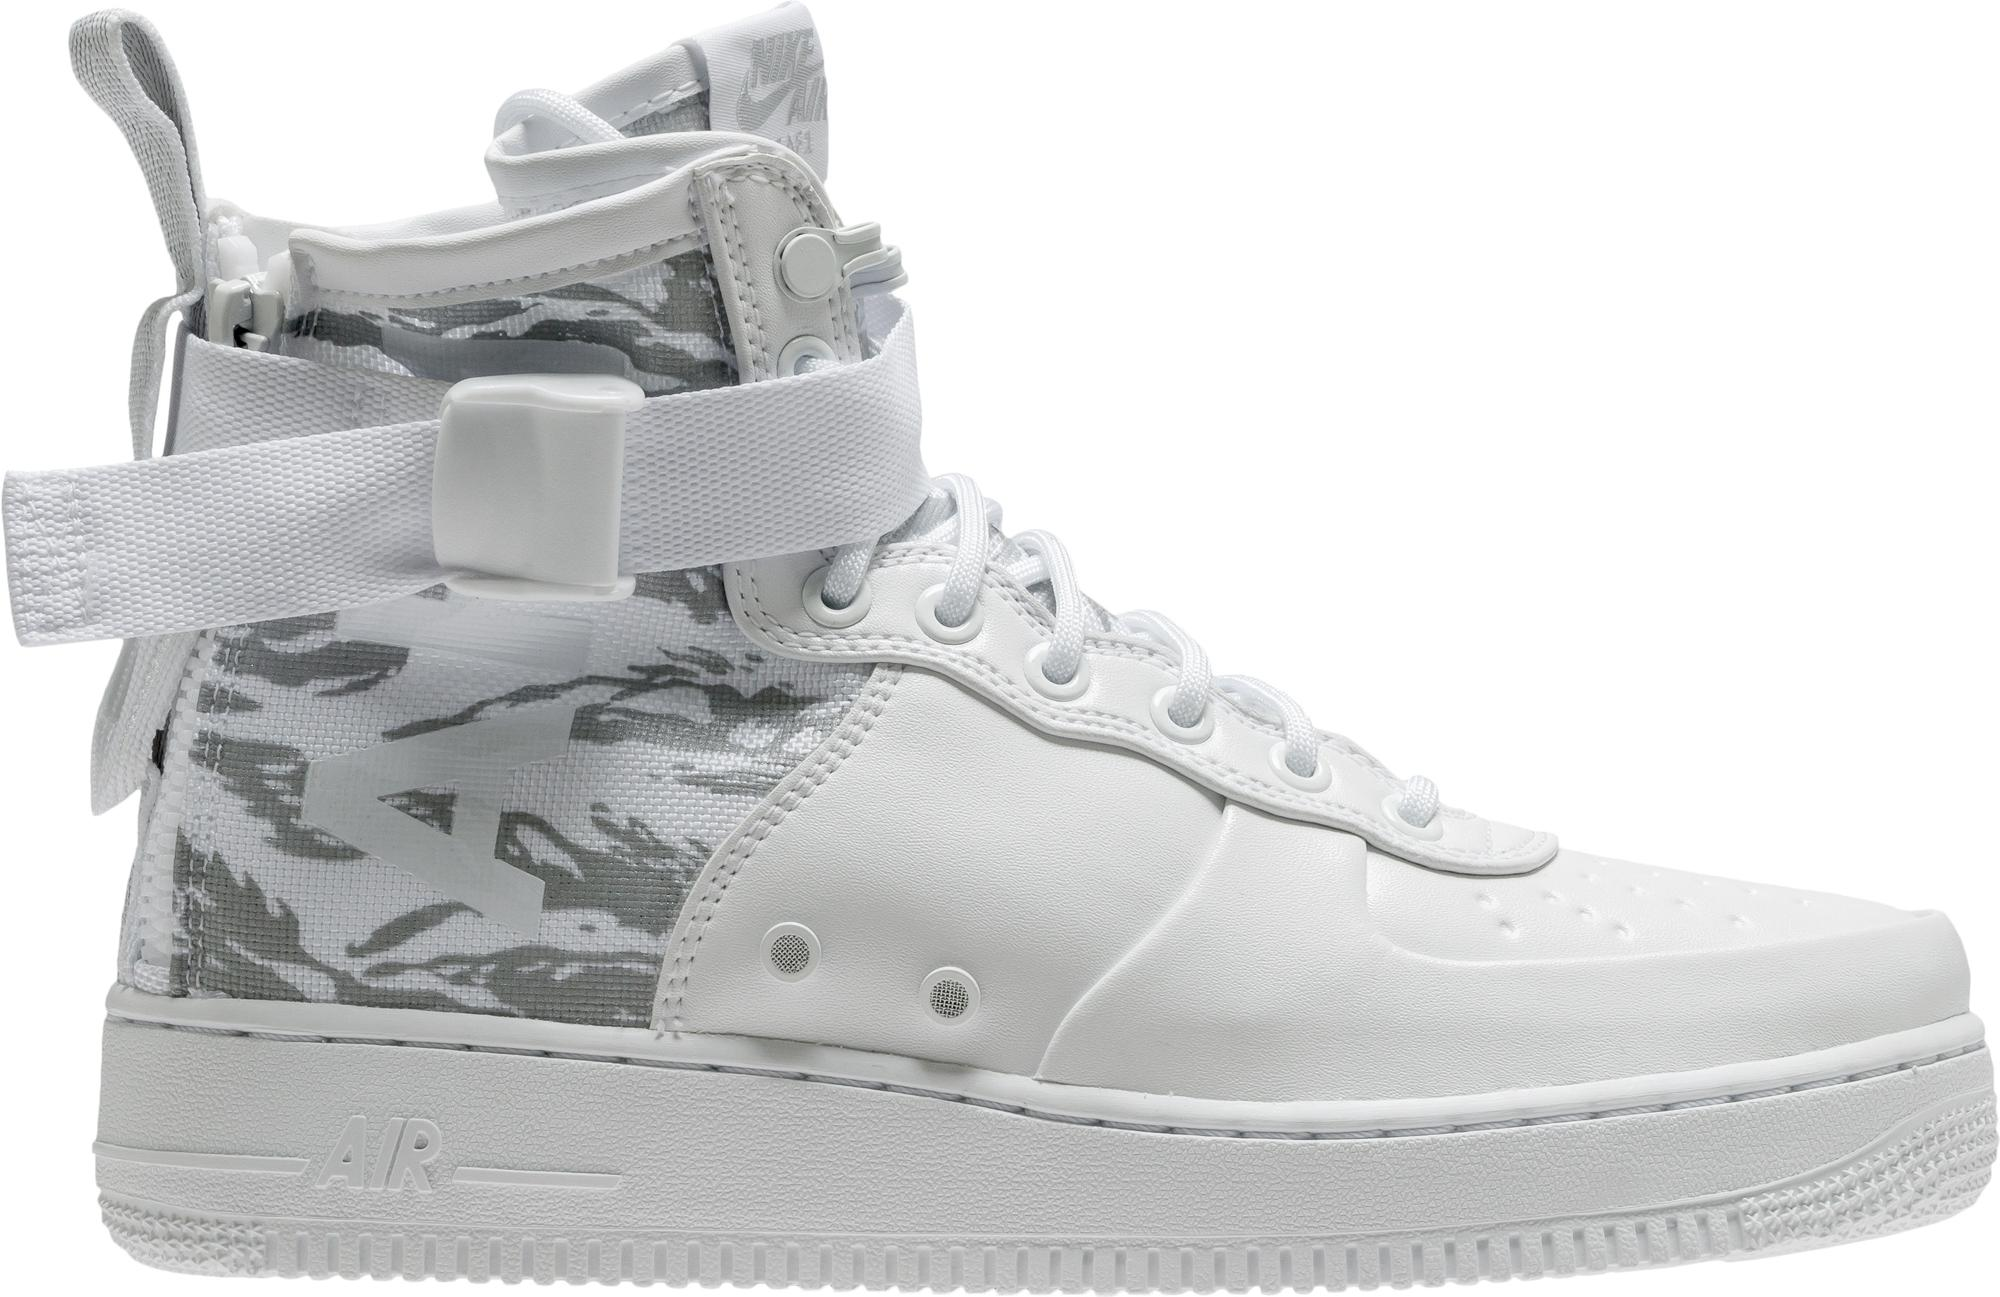 Nike Sf Air Force 1 Mid Winter Camo in